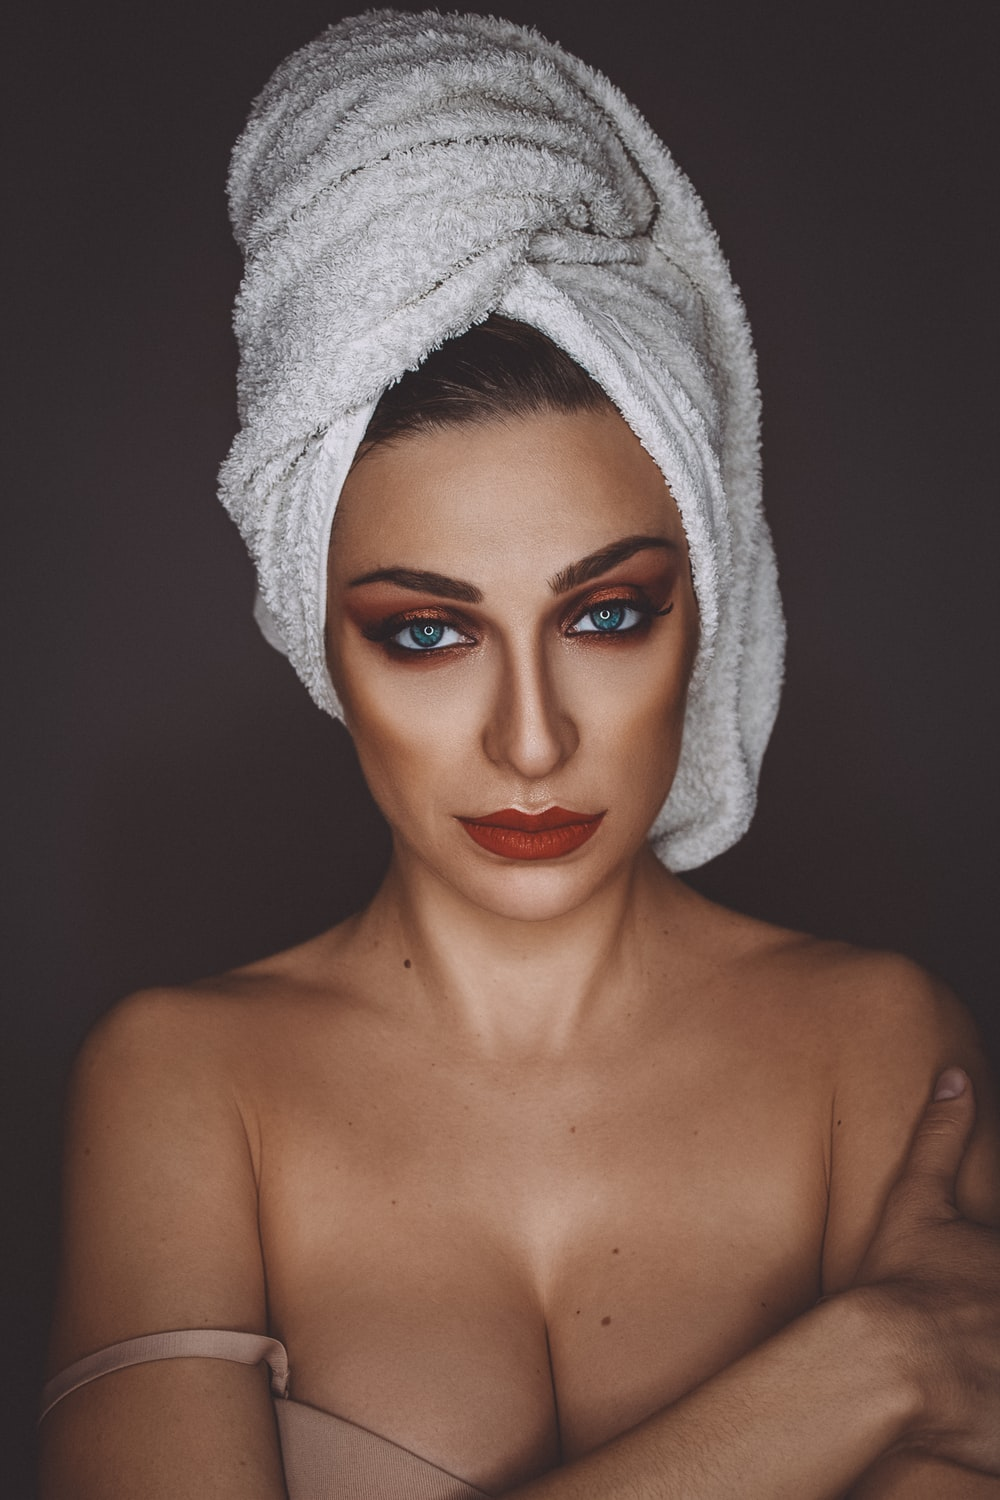 woman with white towel on head